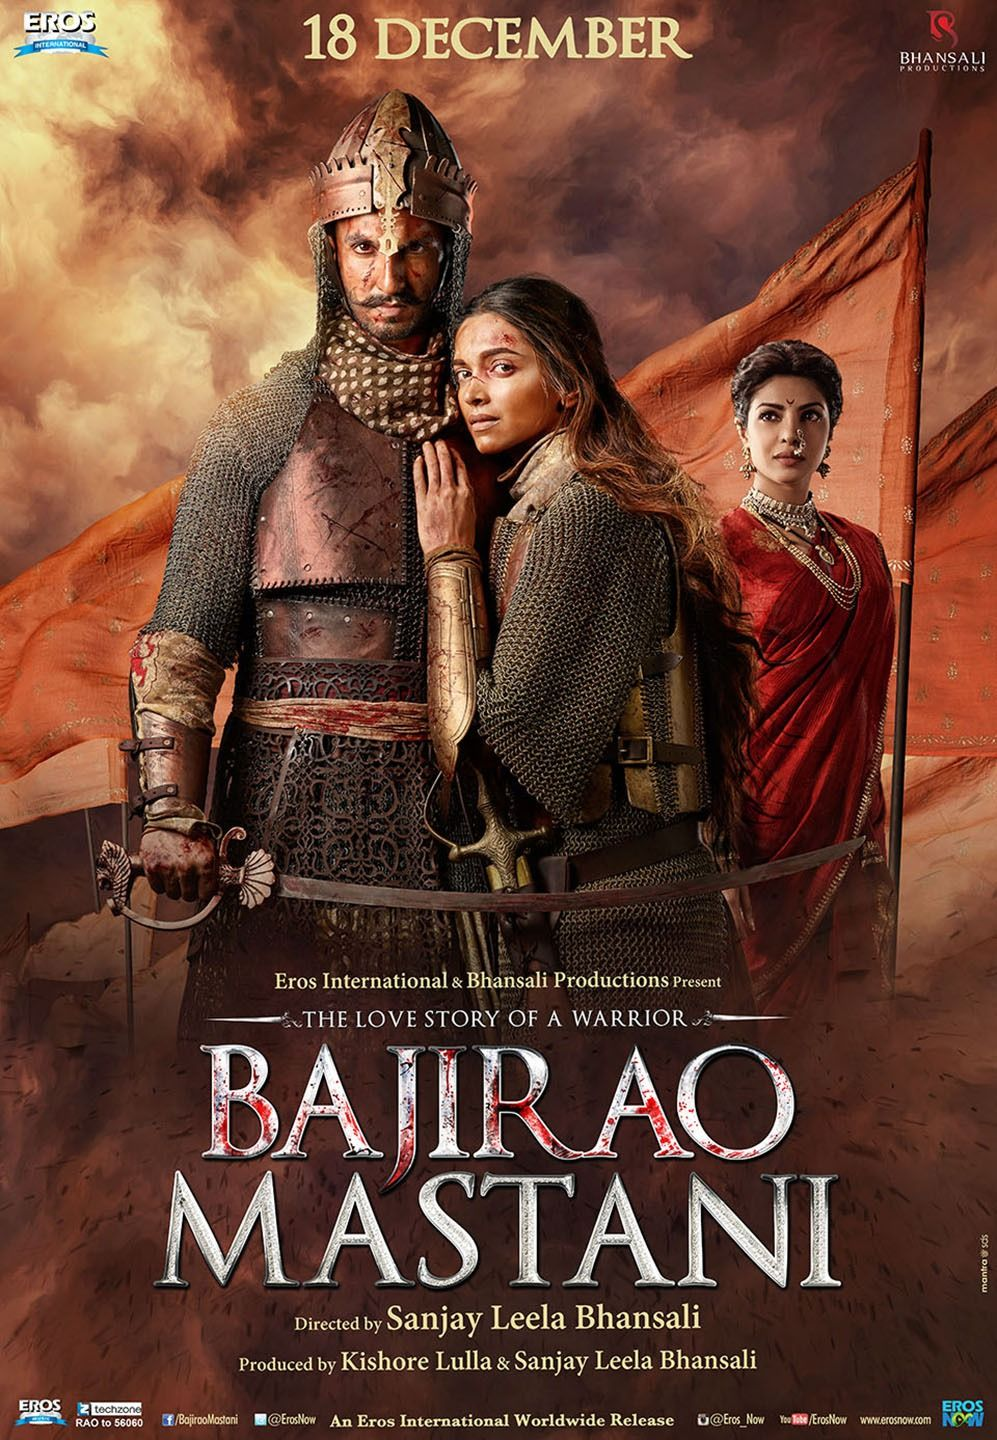 Return to the main poster page for Bajirao Mastani (2 of